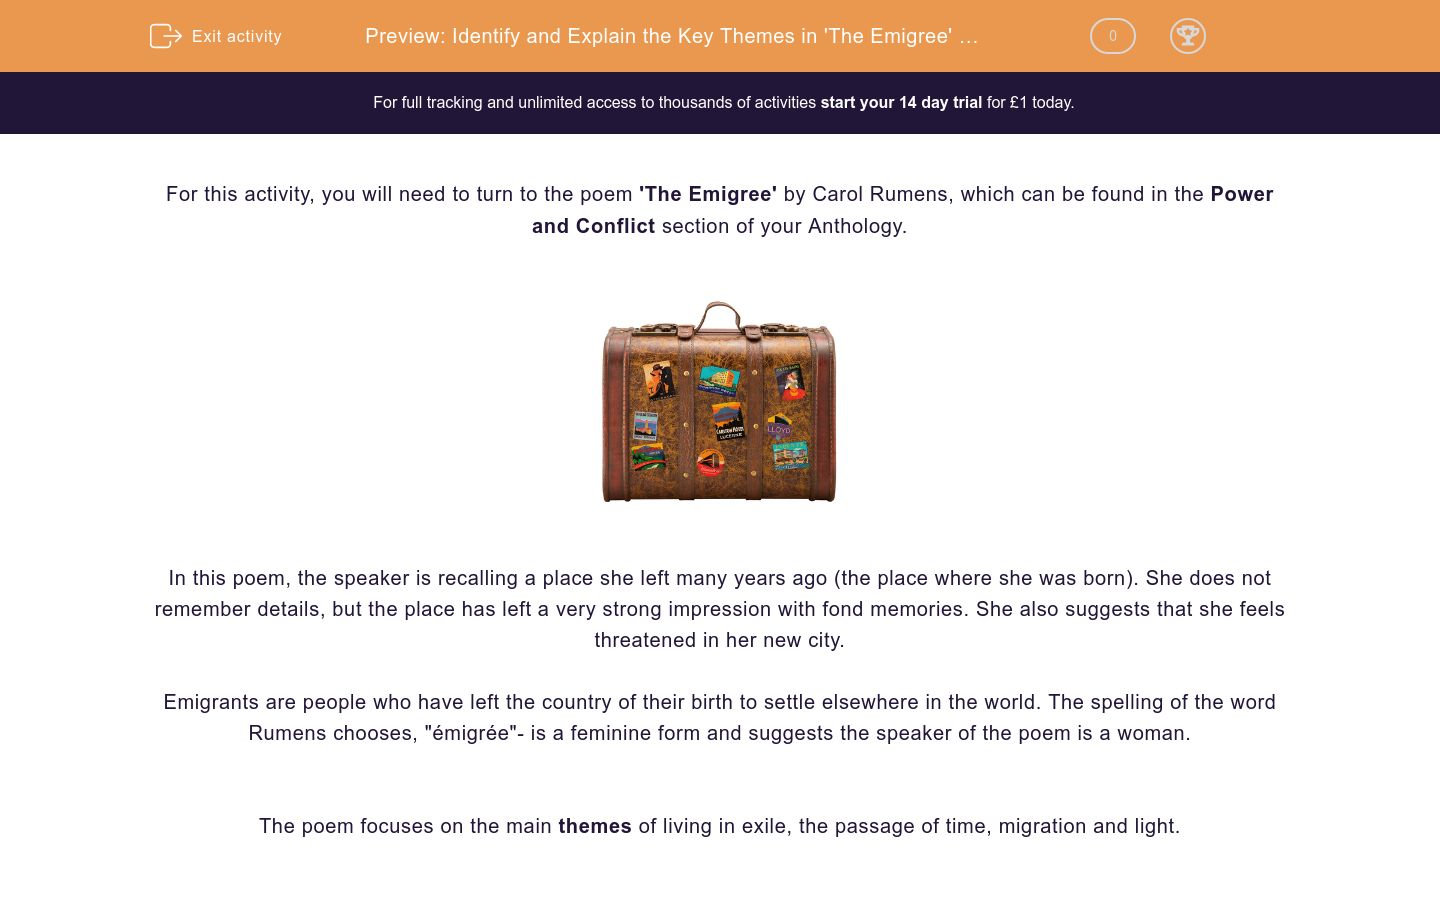 'Identify and Explain the Key Themes in 'The Emigree' by Carol Rumens' worksheet